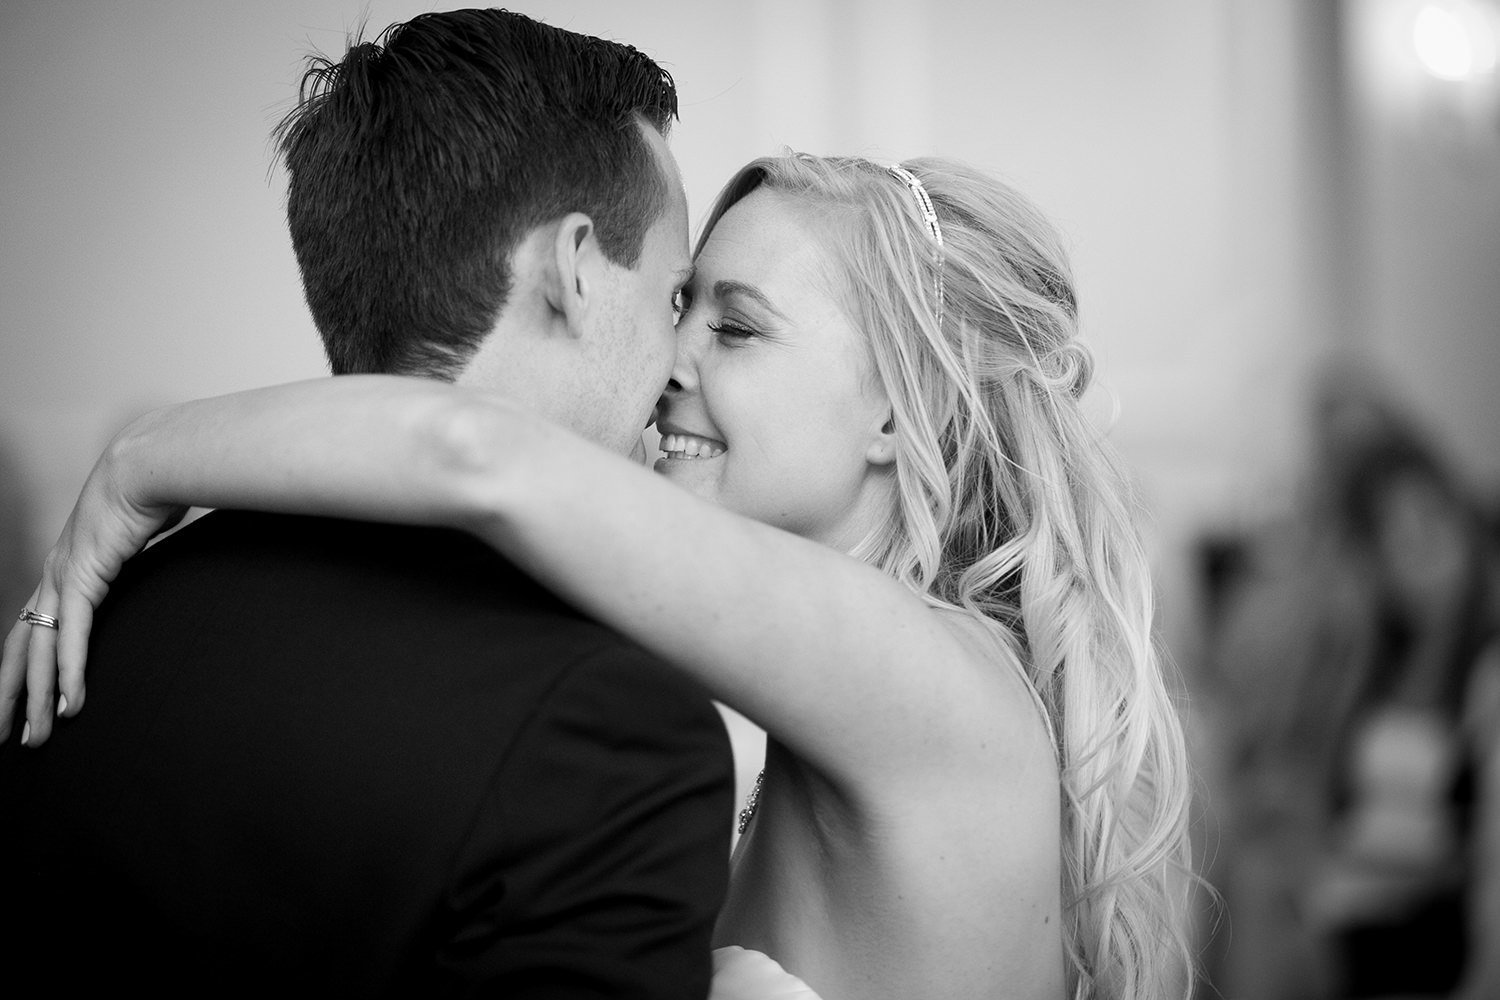 Sweet natural moment between the bride and her man